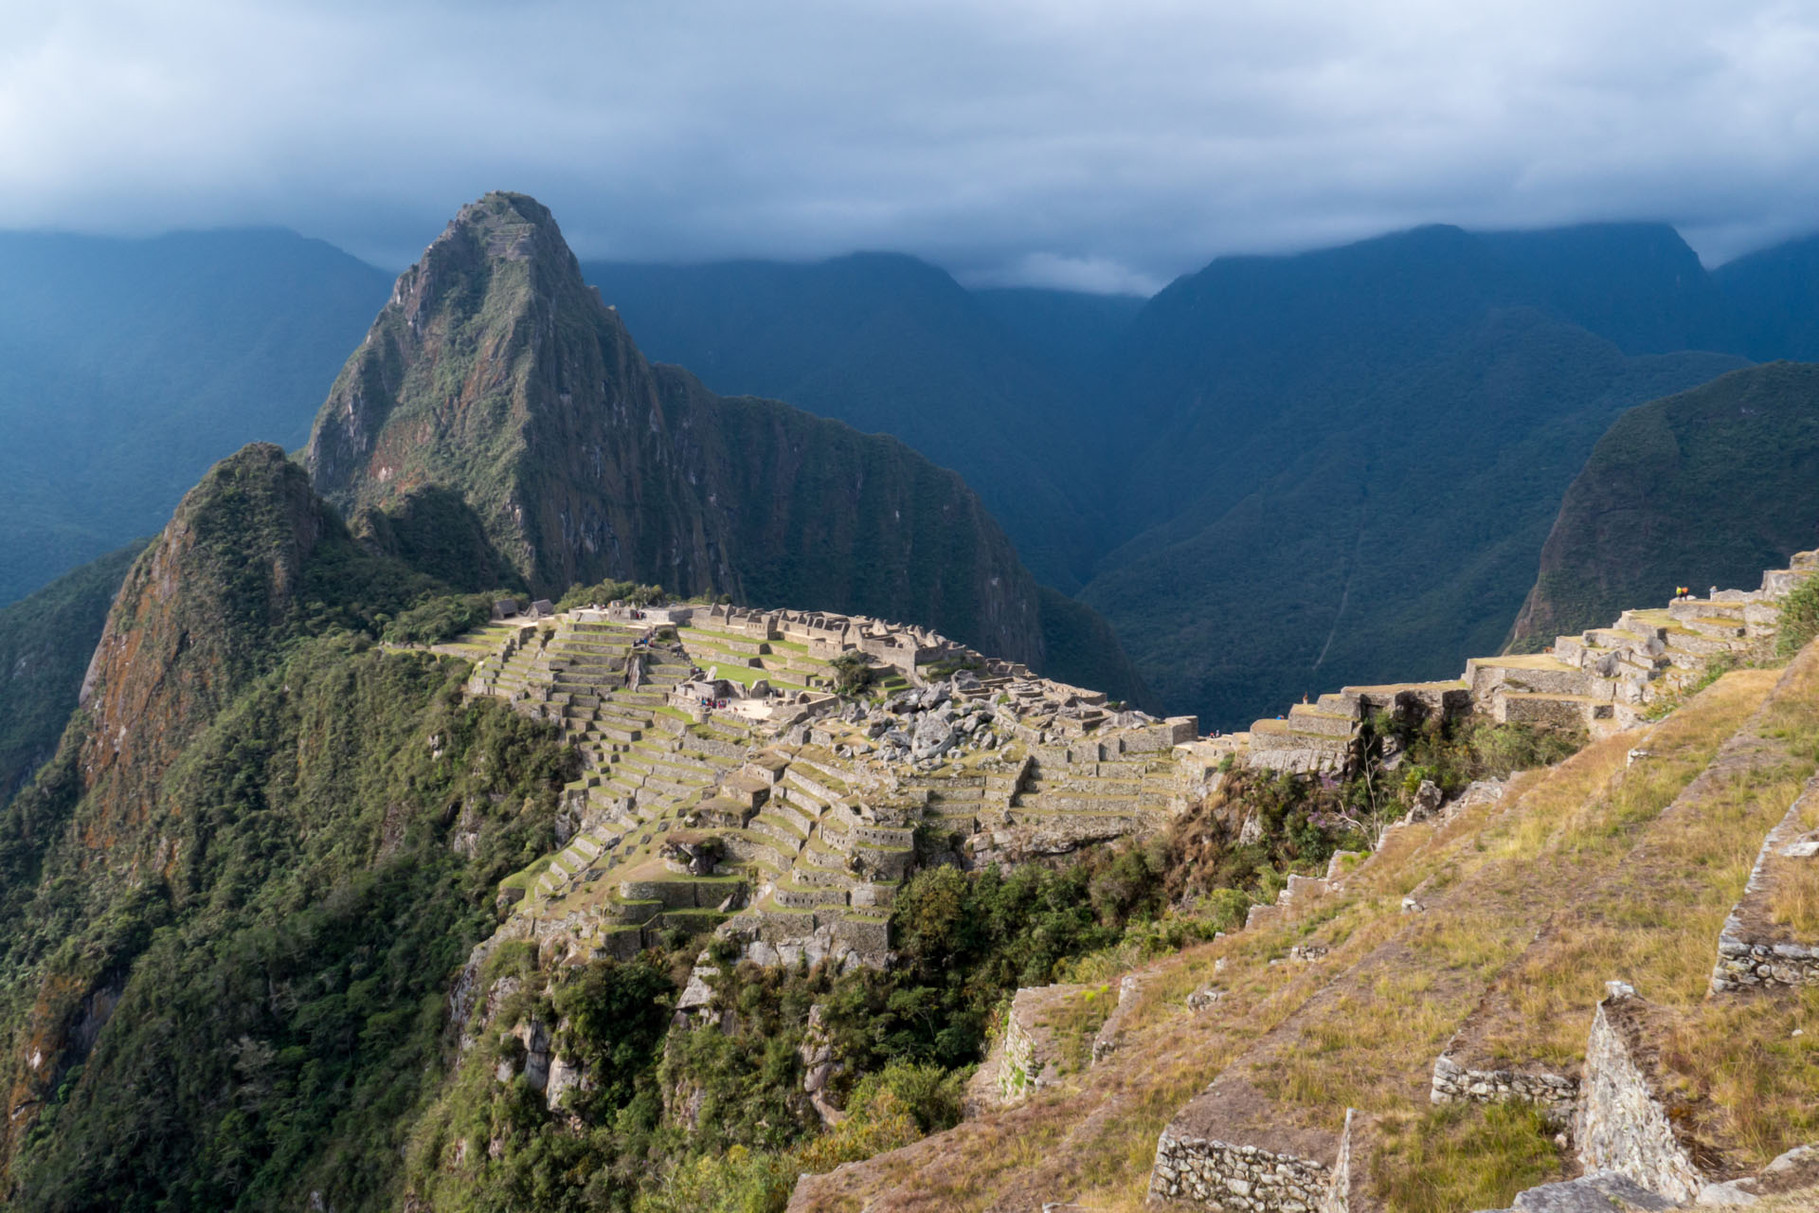 Machu Pichu and Wayna Picchu (2700 masl) in the background